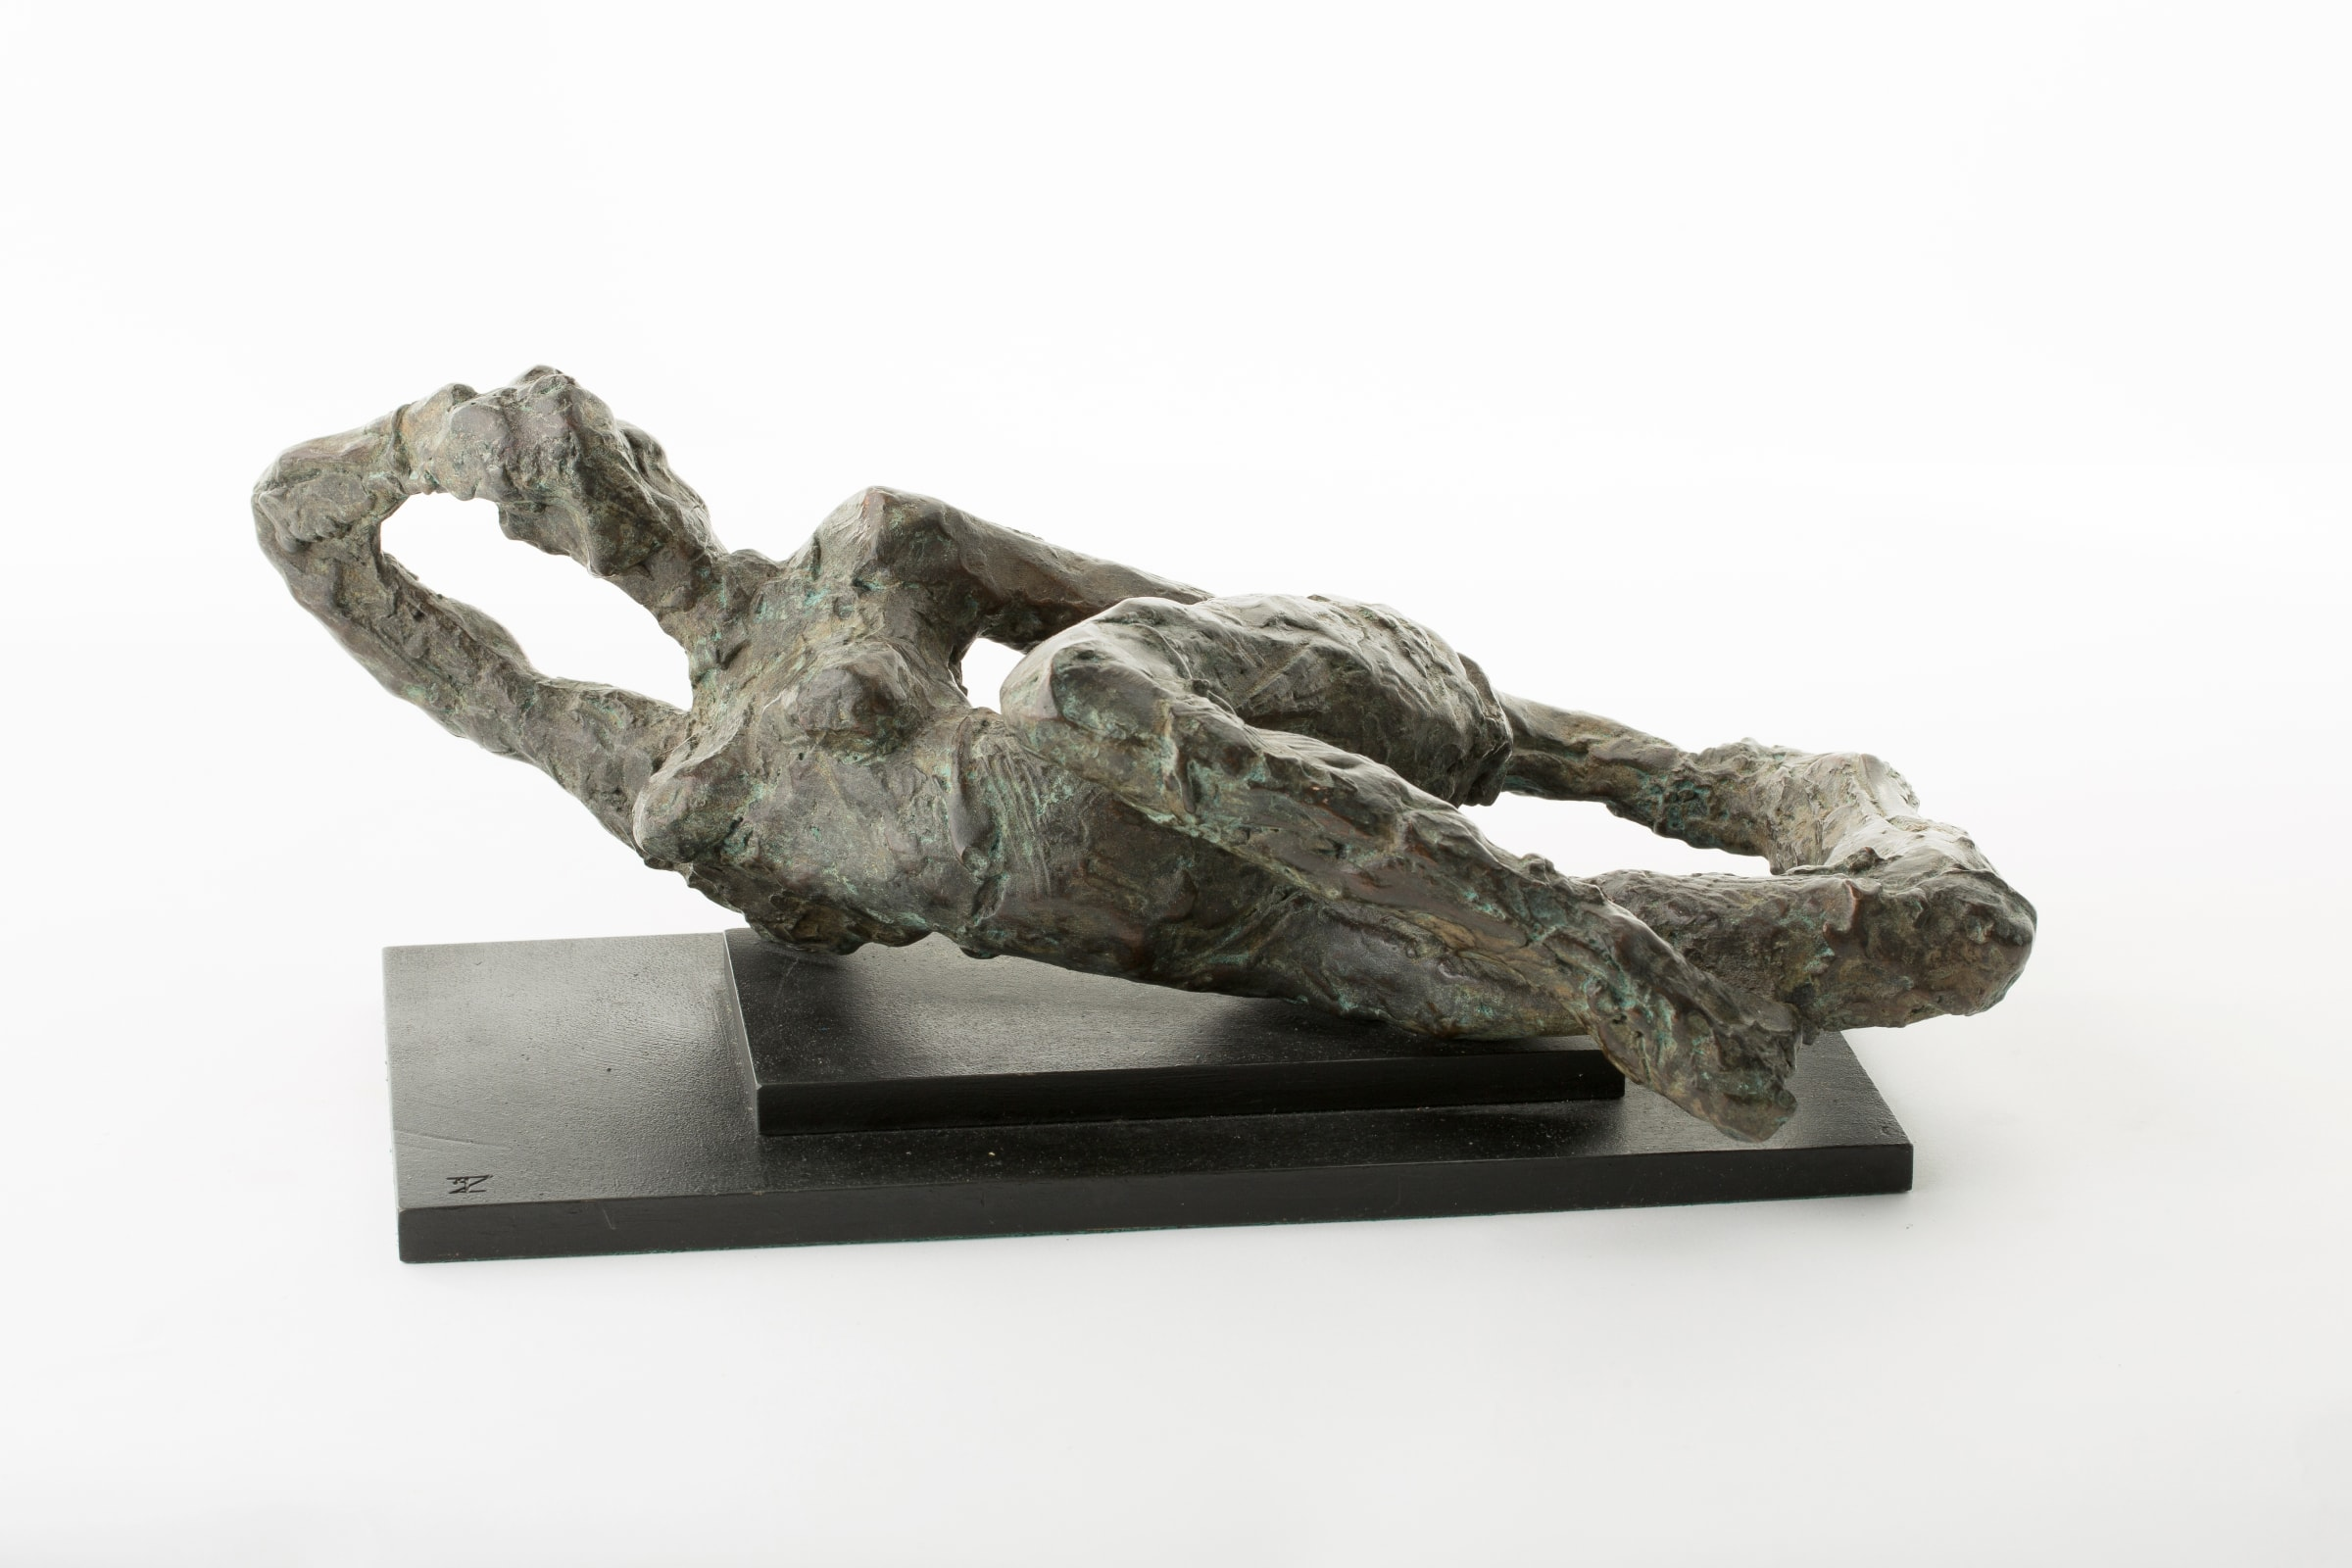 """<span class=""""link fancybox-details-link""""><a href=""""/artists/78-ivor-abrahams/works/9825-ivor-abrahams-reclining-figure-1986/"""">View Detail Page</a></span><div class=""""artist""""><span class=""""artist""""><strong>IVOR ABRAHAMS</strong></span></div><div class=""""title""""><em>Reclining figure</em>, 1986</div><div class=""""medium"""">Bronze</div><div class=""""dimensions"""">16 x 35 x 20 cm<br /> 6 1/4 x 13 3/4 x 7 7/8 inches</div><div class=""""price"""">€6,500.00</div>"""